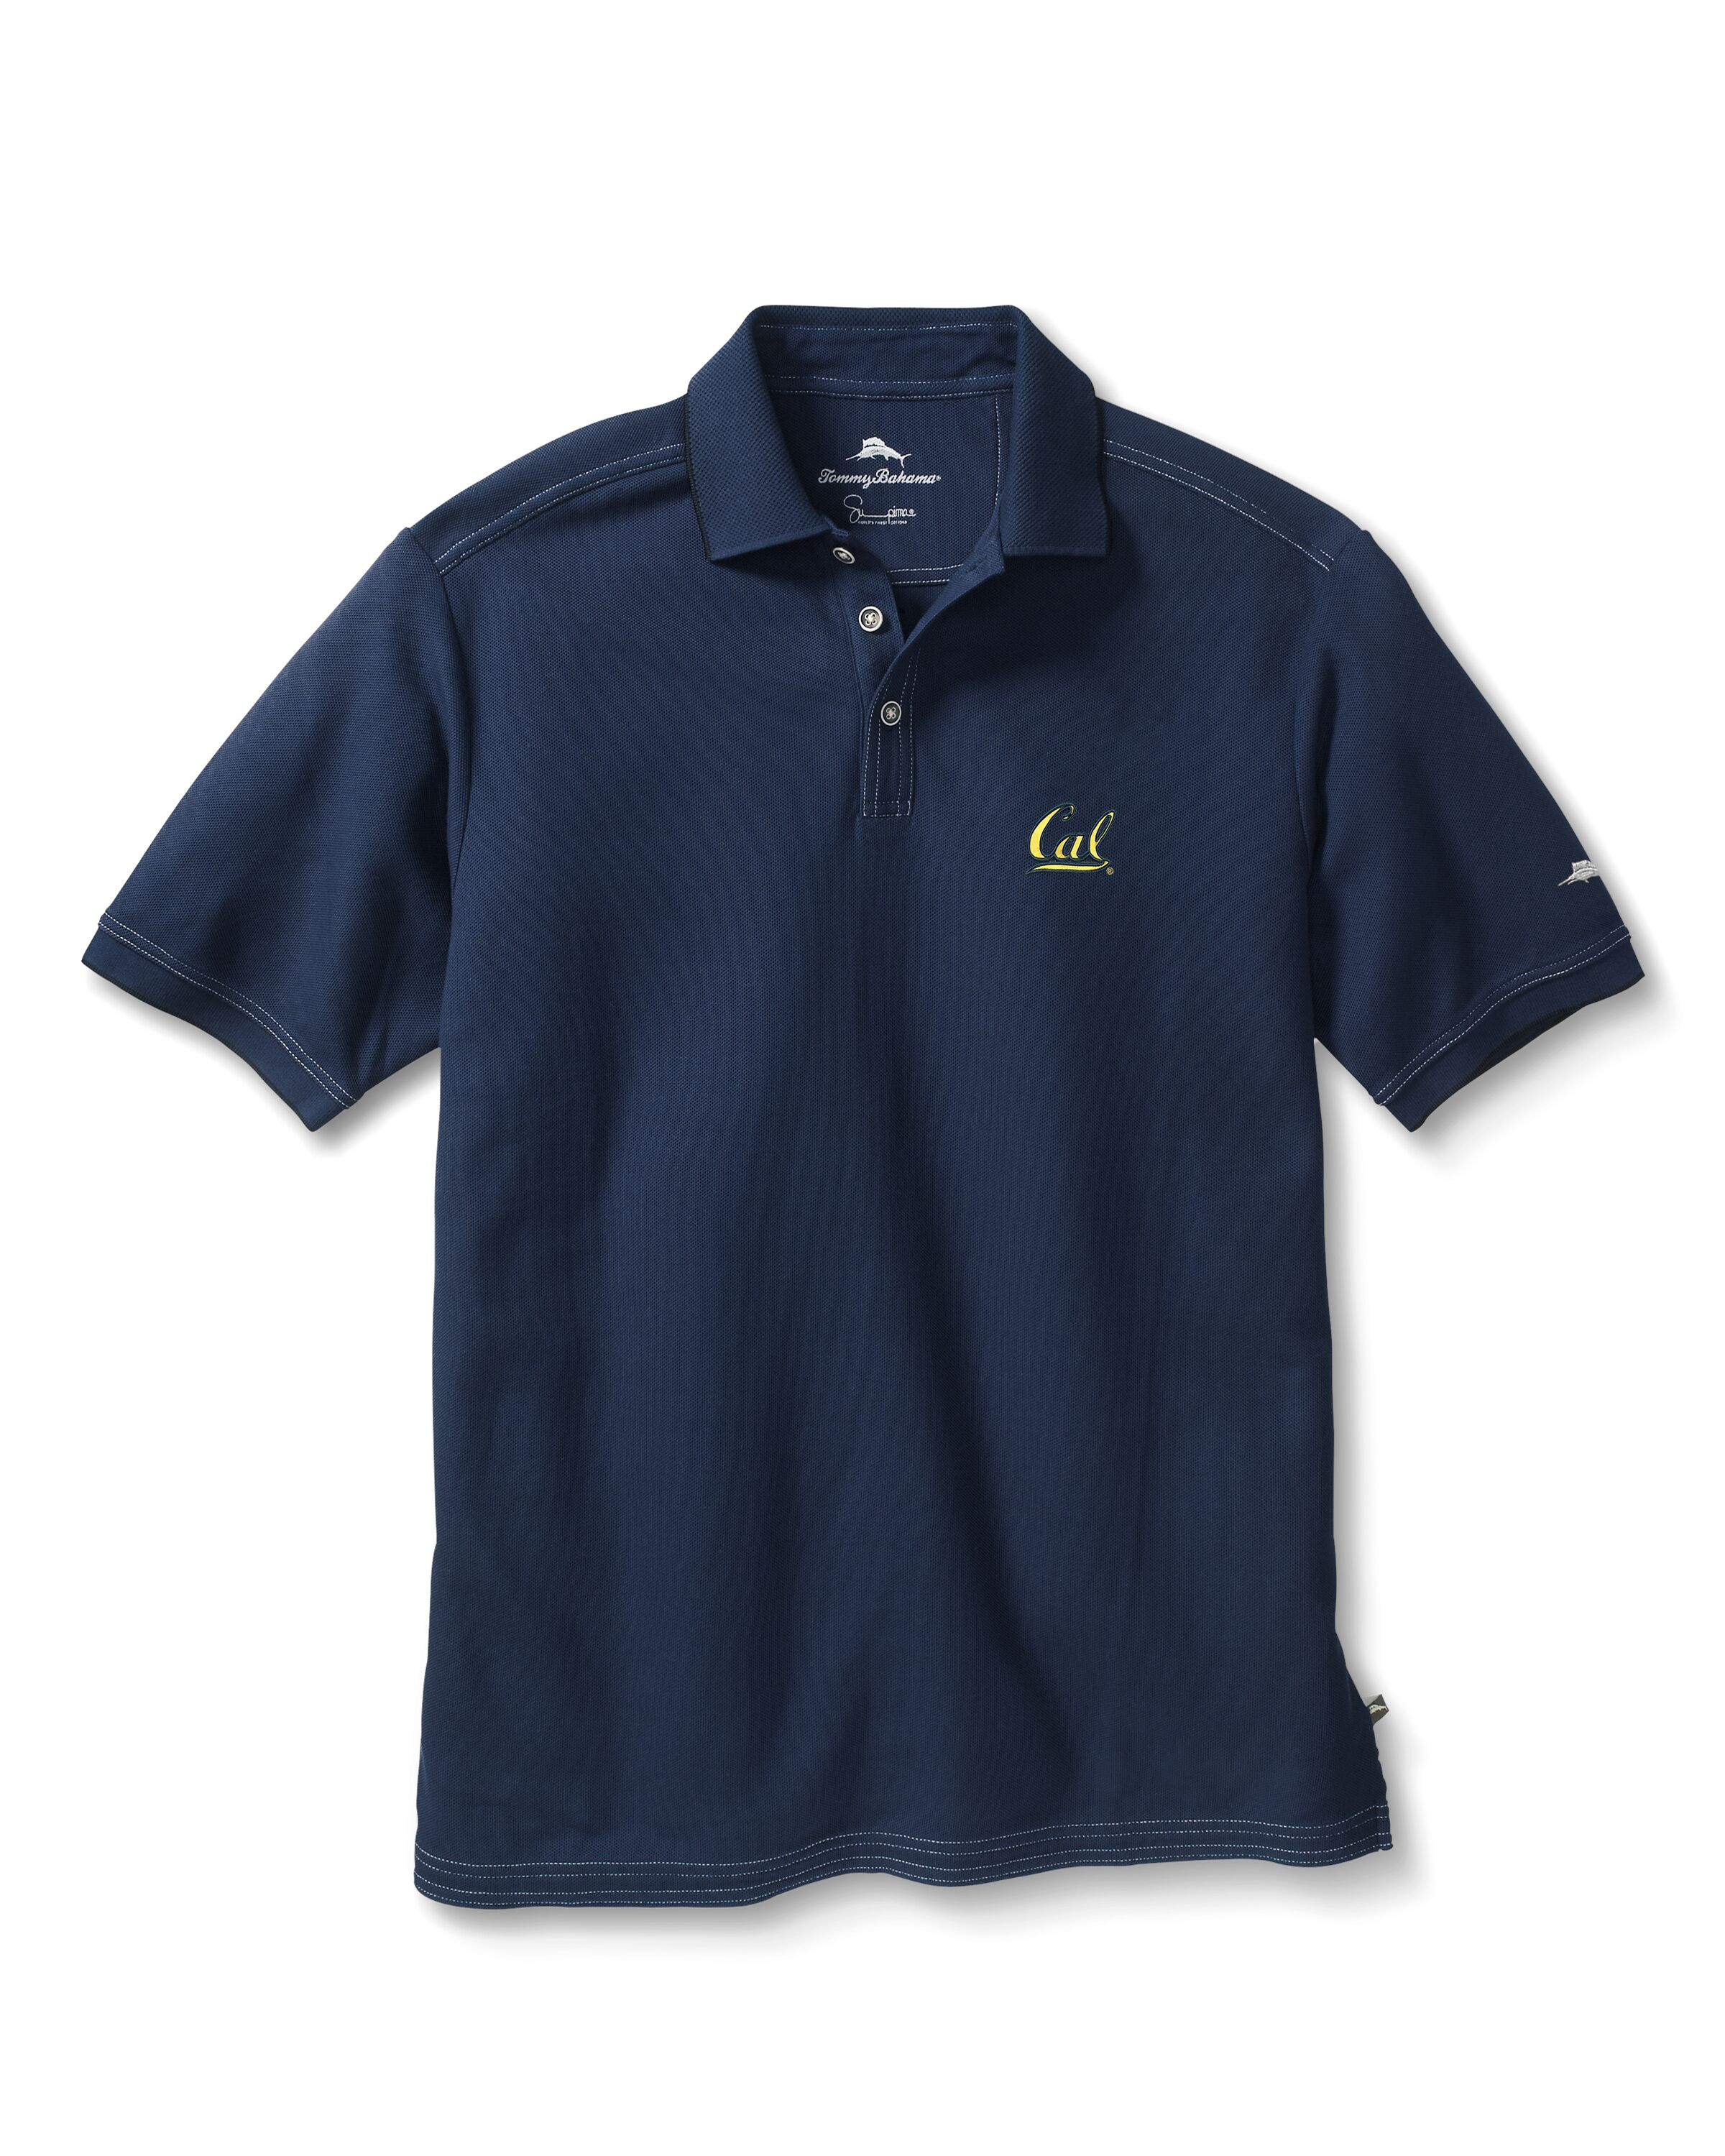 Cal Bears Sports Emfielder 2.0 Polo